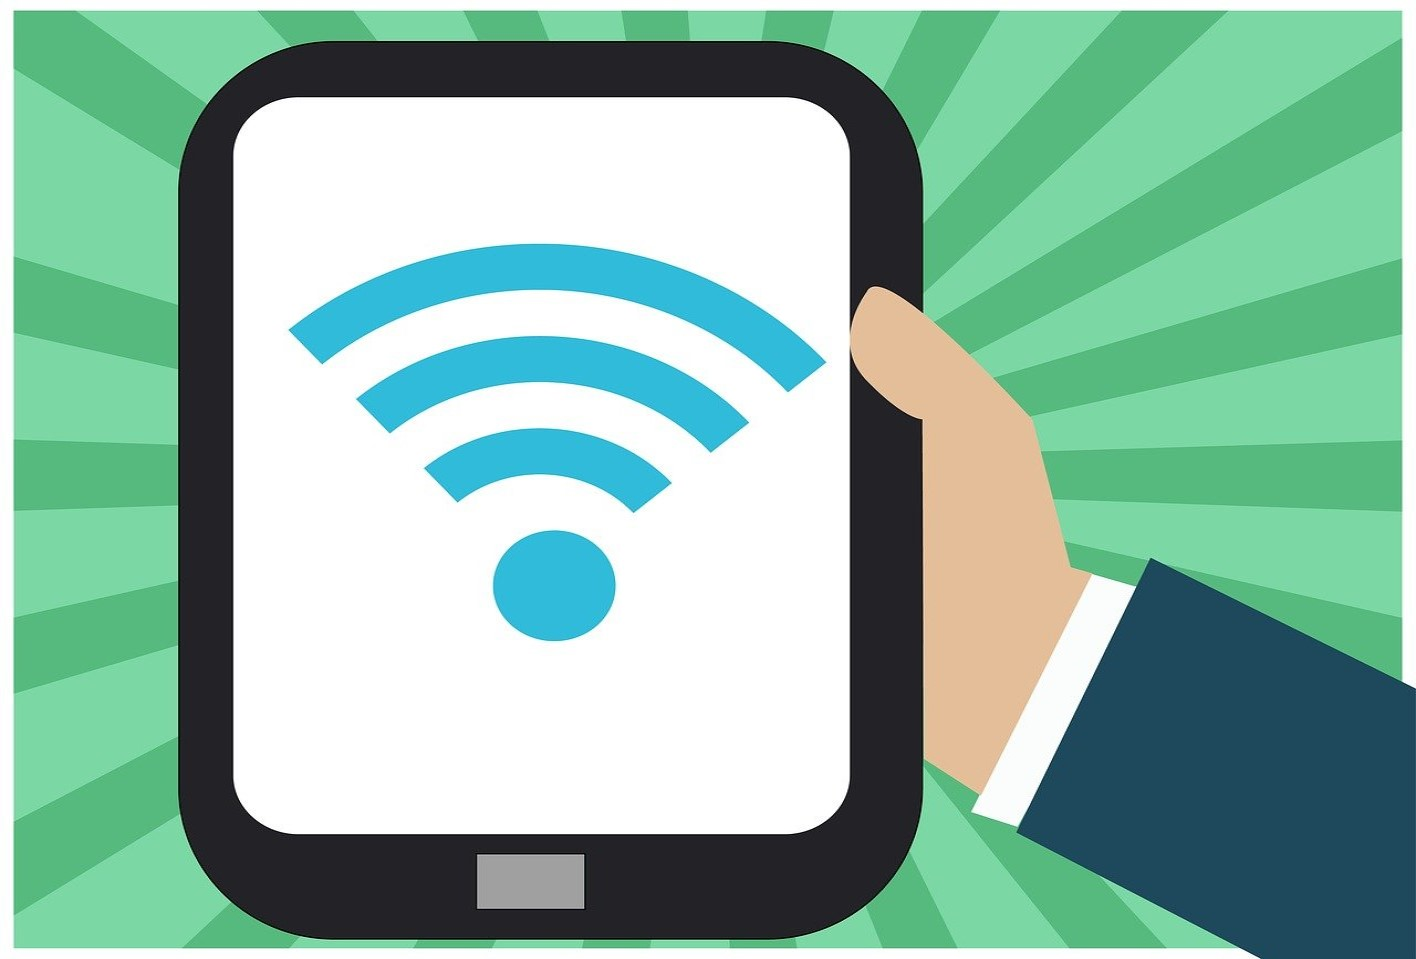 graphic of hand holding tablet with wifi symbol